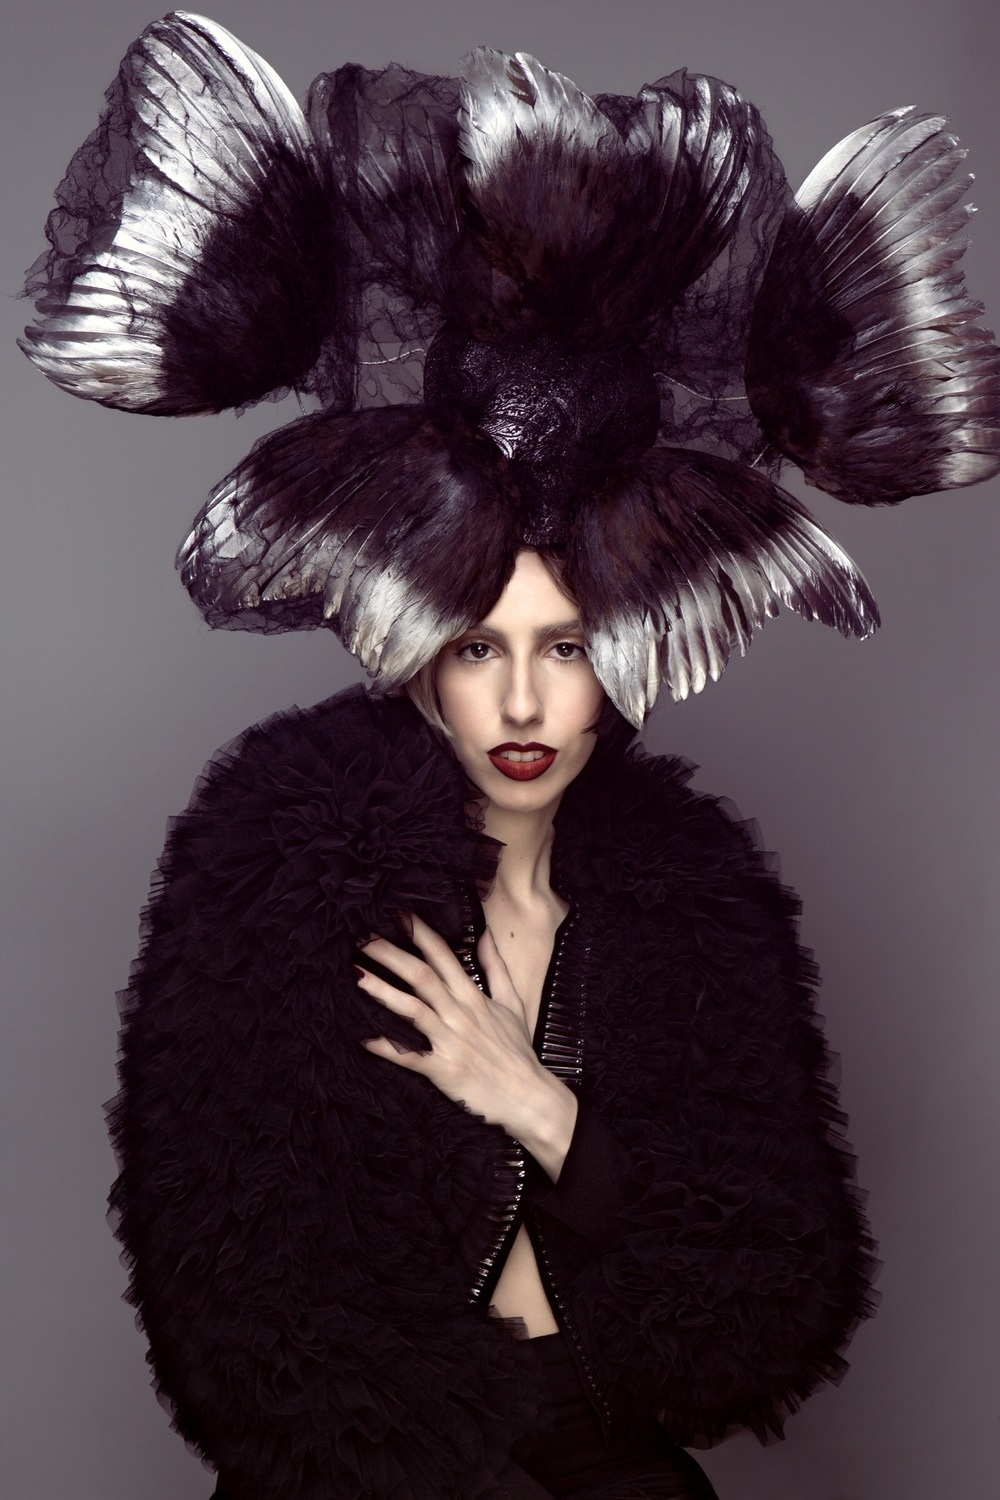 Photo: Lenox Fontaine | Makeup: Danielle Lewis | Hat: Anya Calends | Jacket: Viktor & Rolf | Lipstick: MAKE BEAUTY